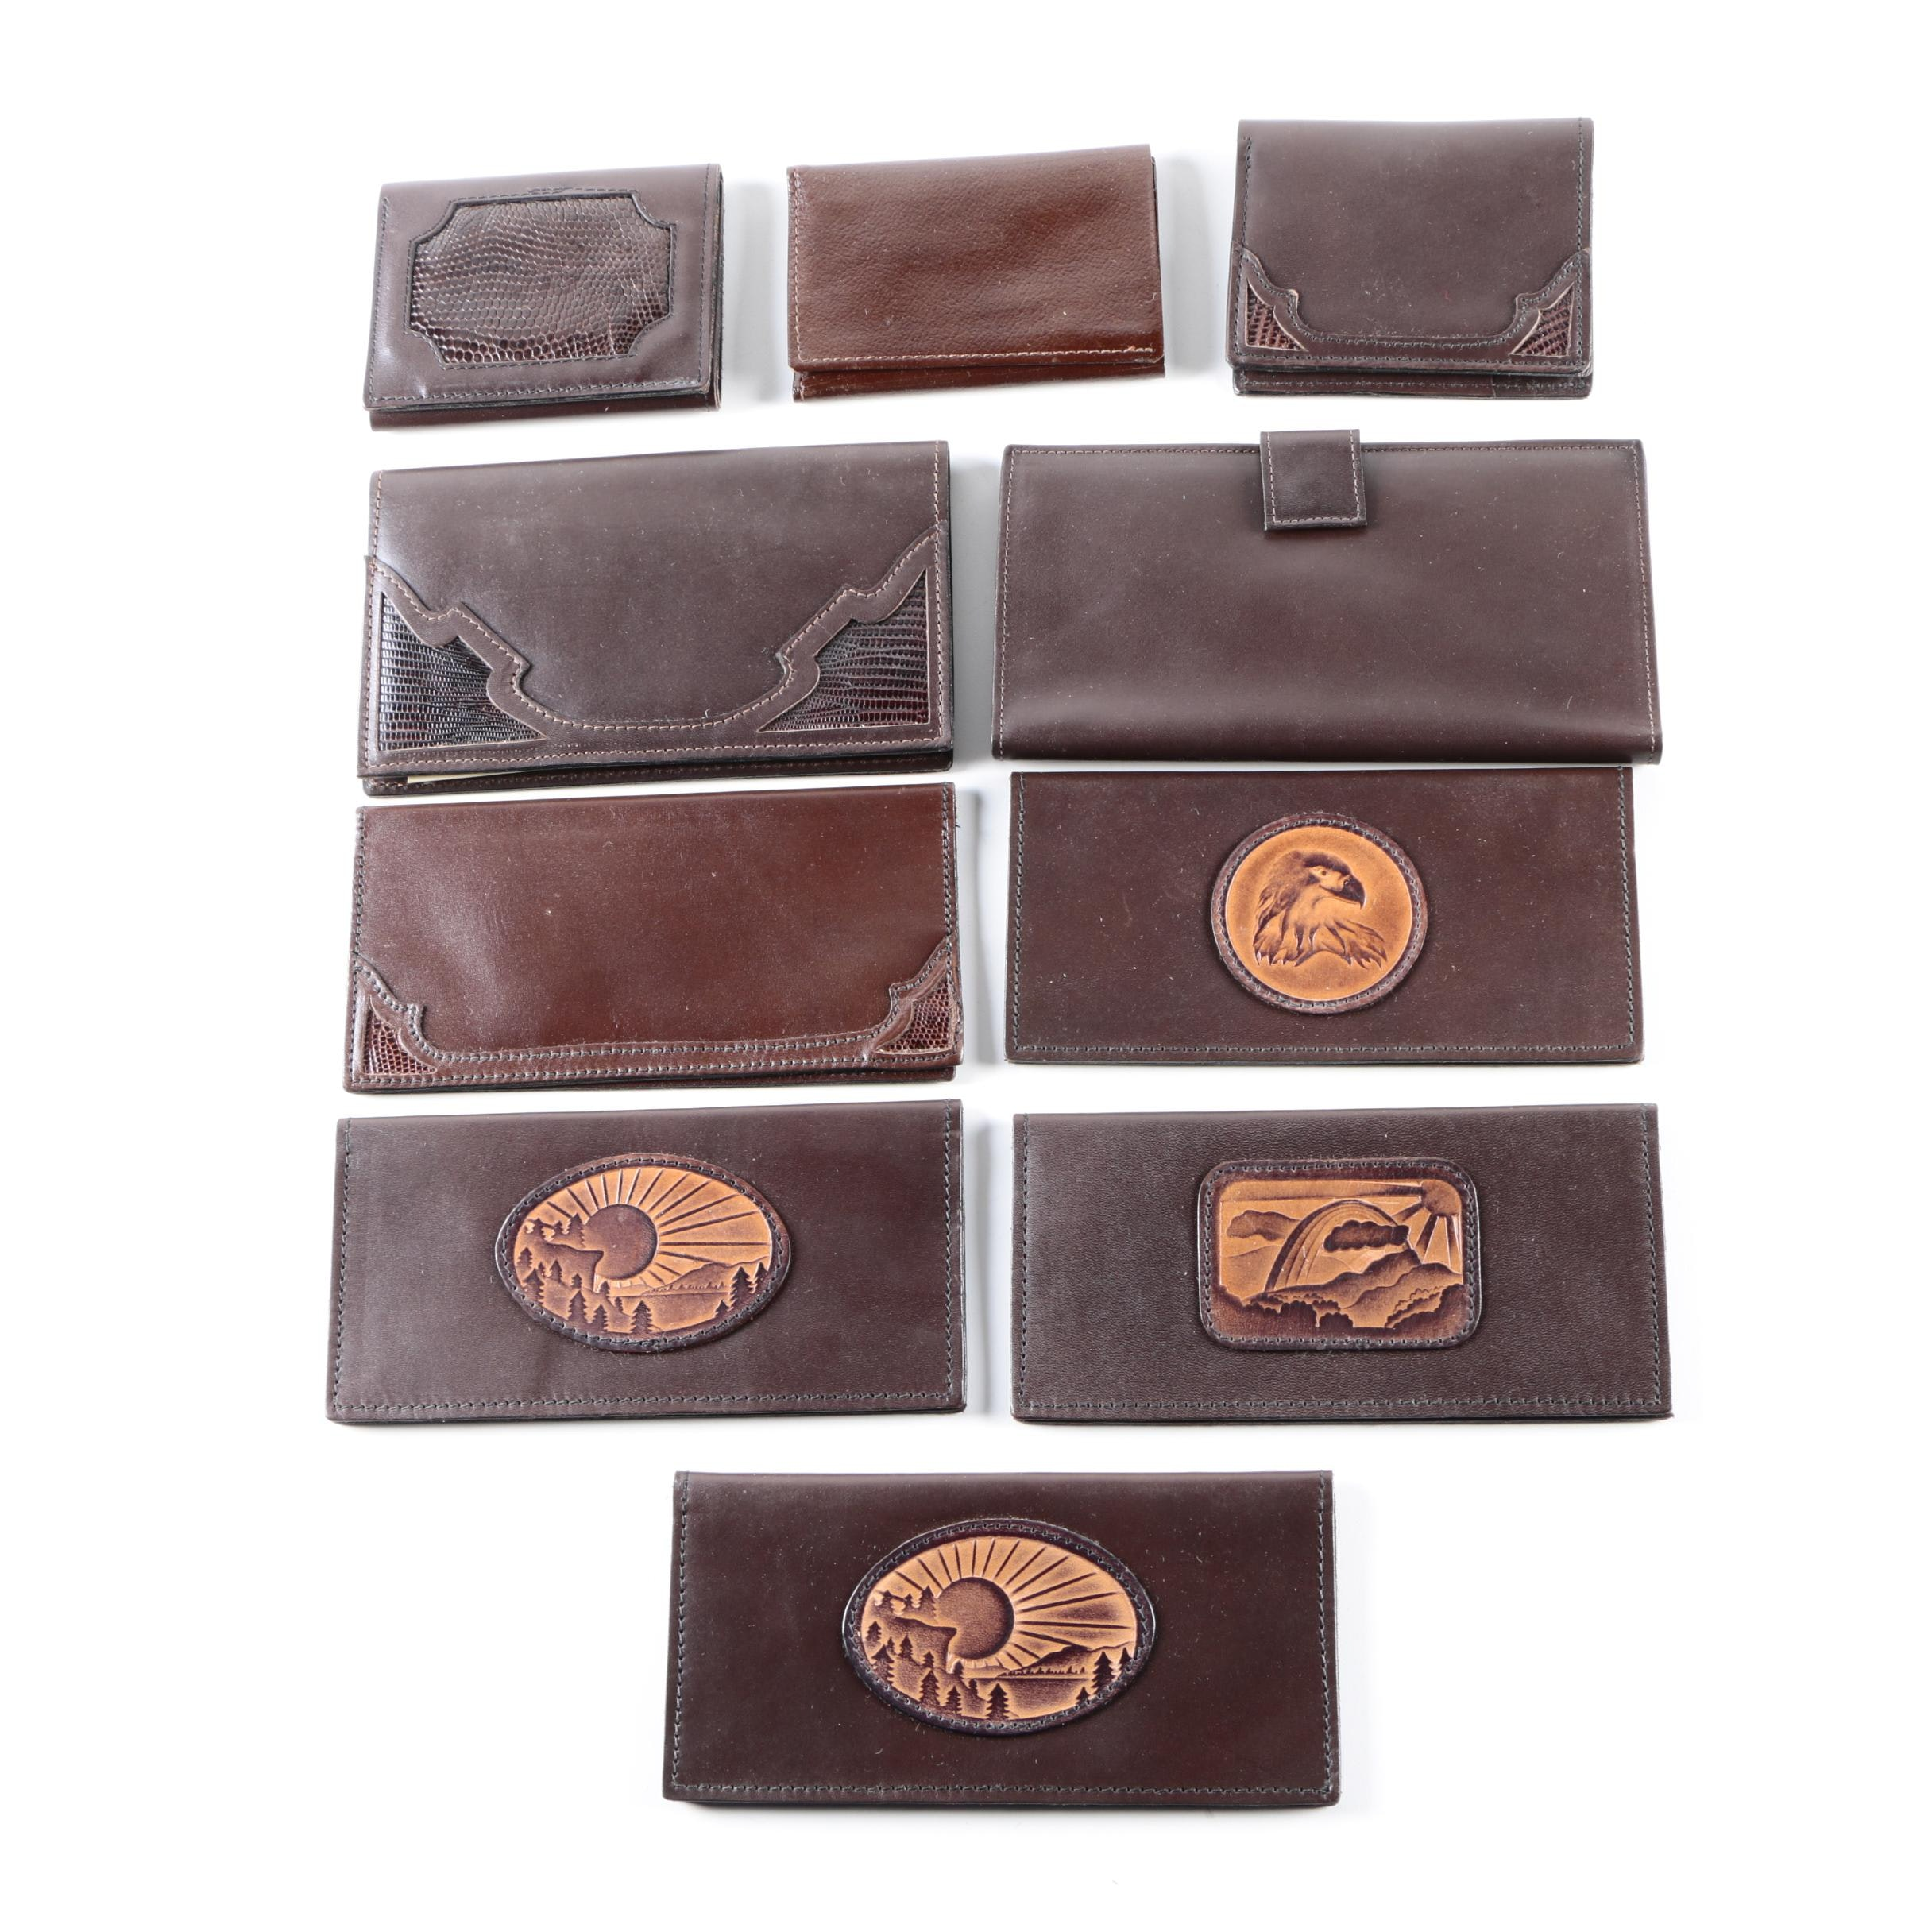 Vintage Dark Leather Wallets Featuring Indiana Leather